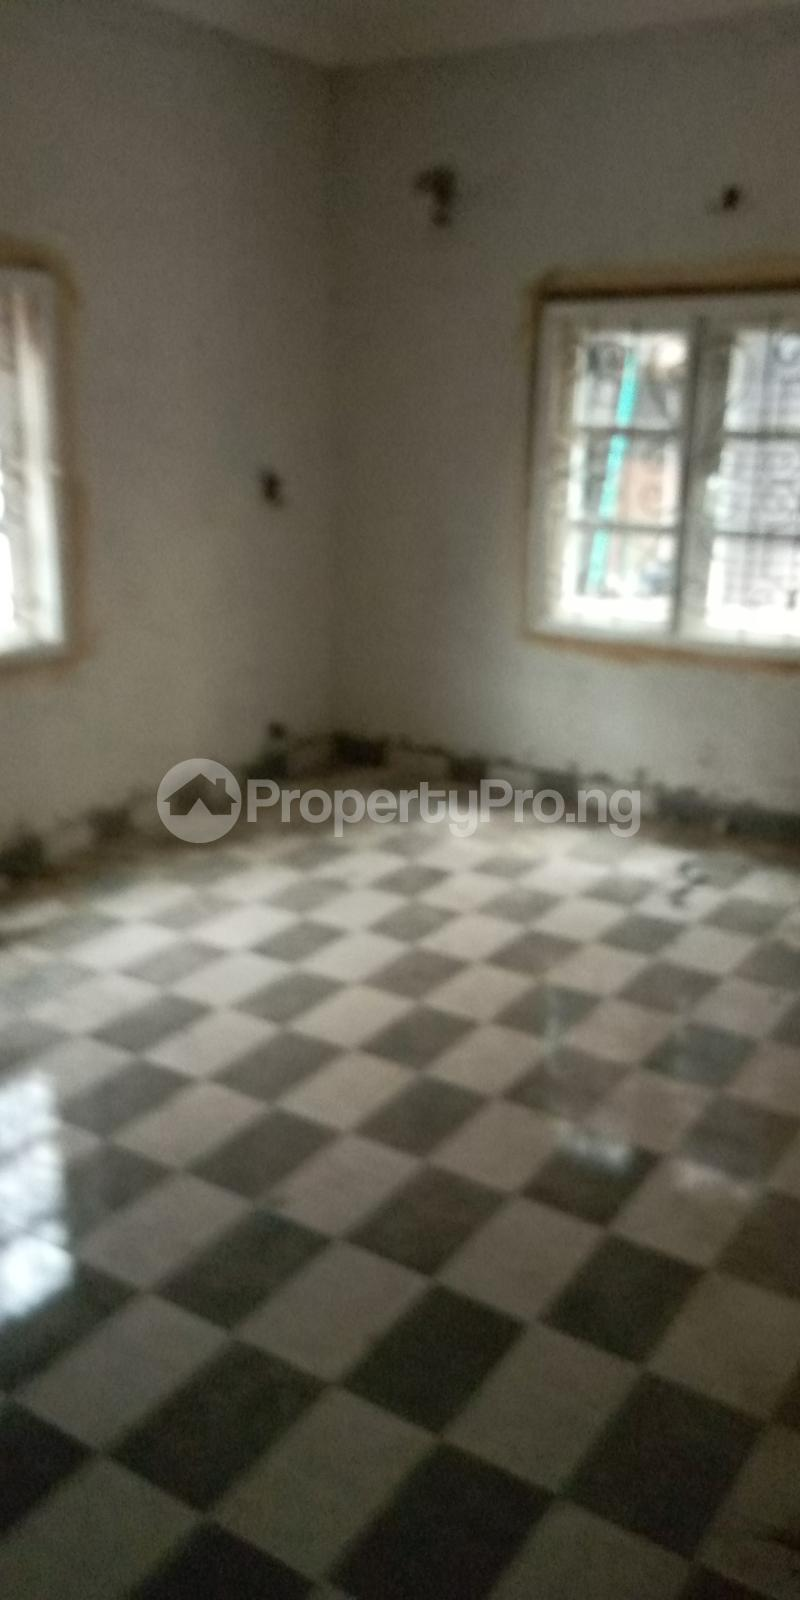 3 bedroom Flat / Apartment for rent Olive Ago palace Okota Lagos - 3